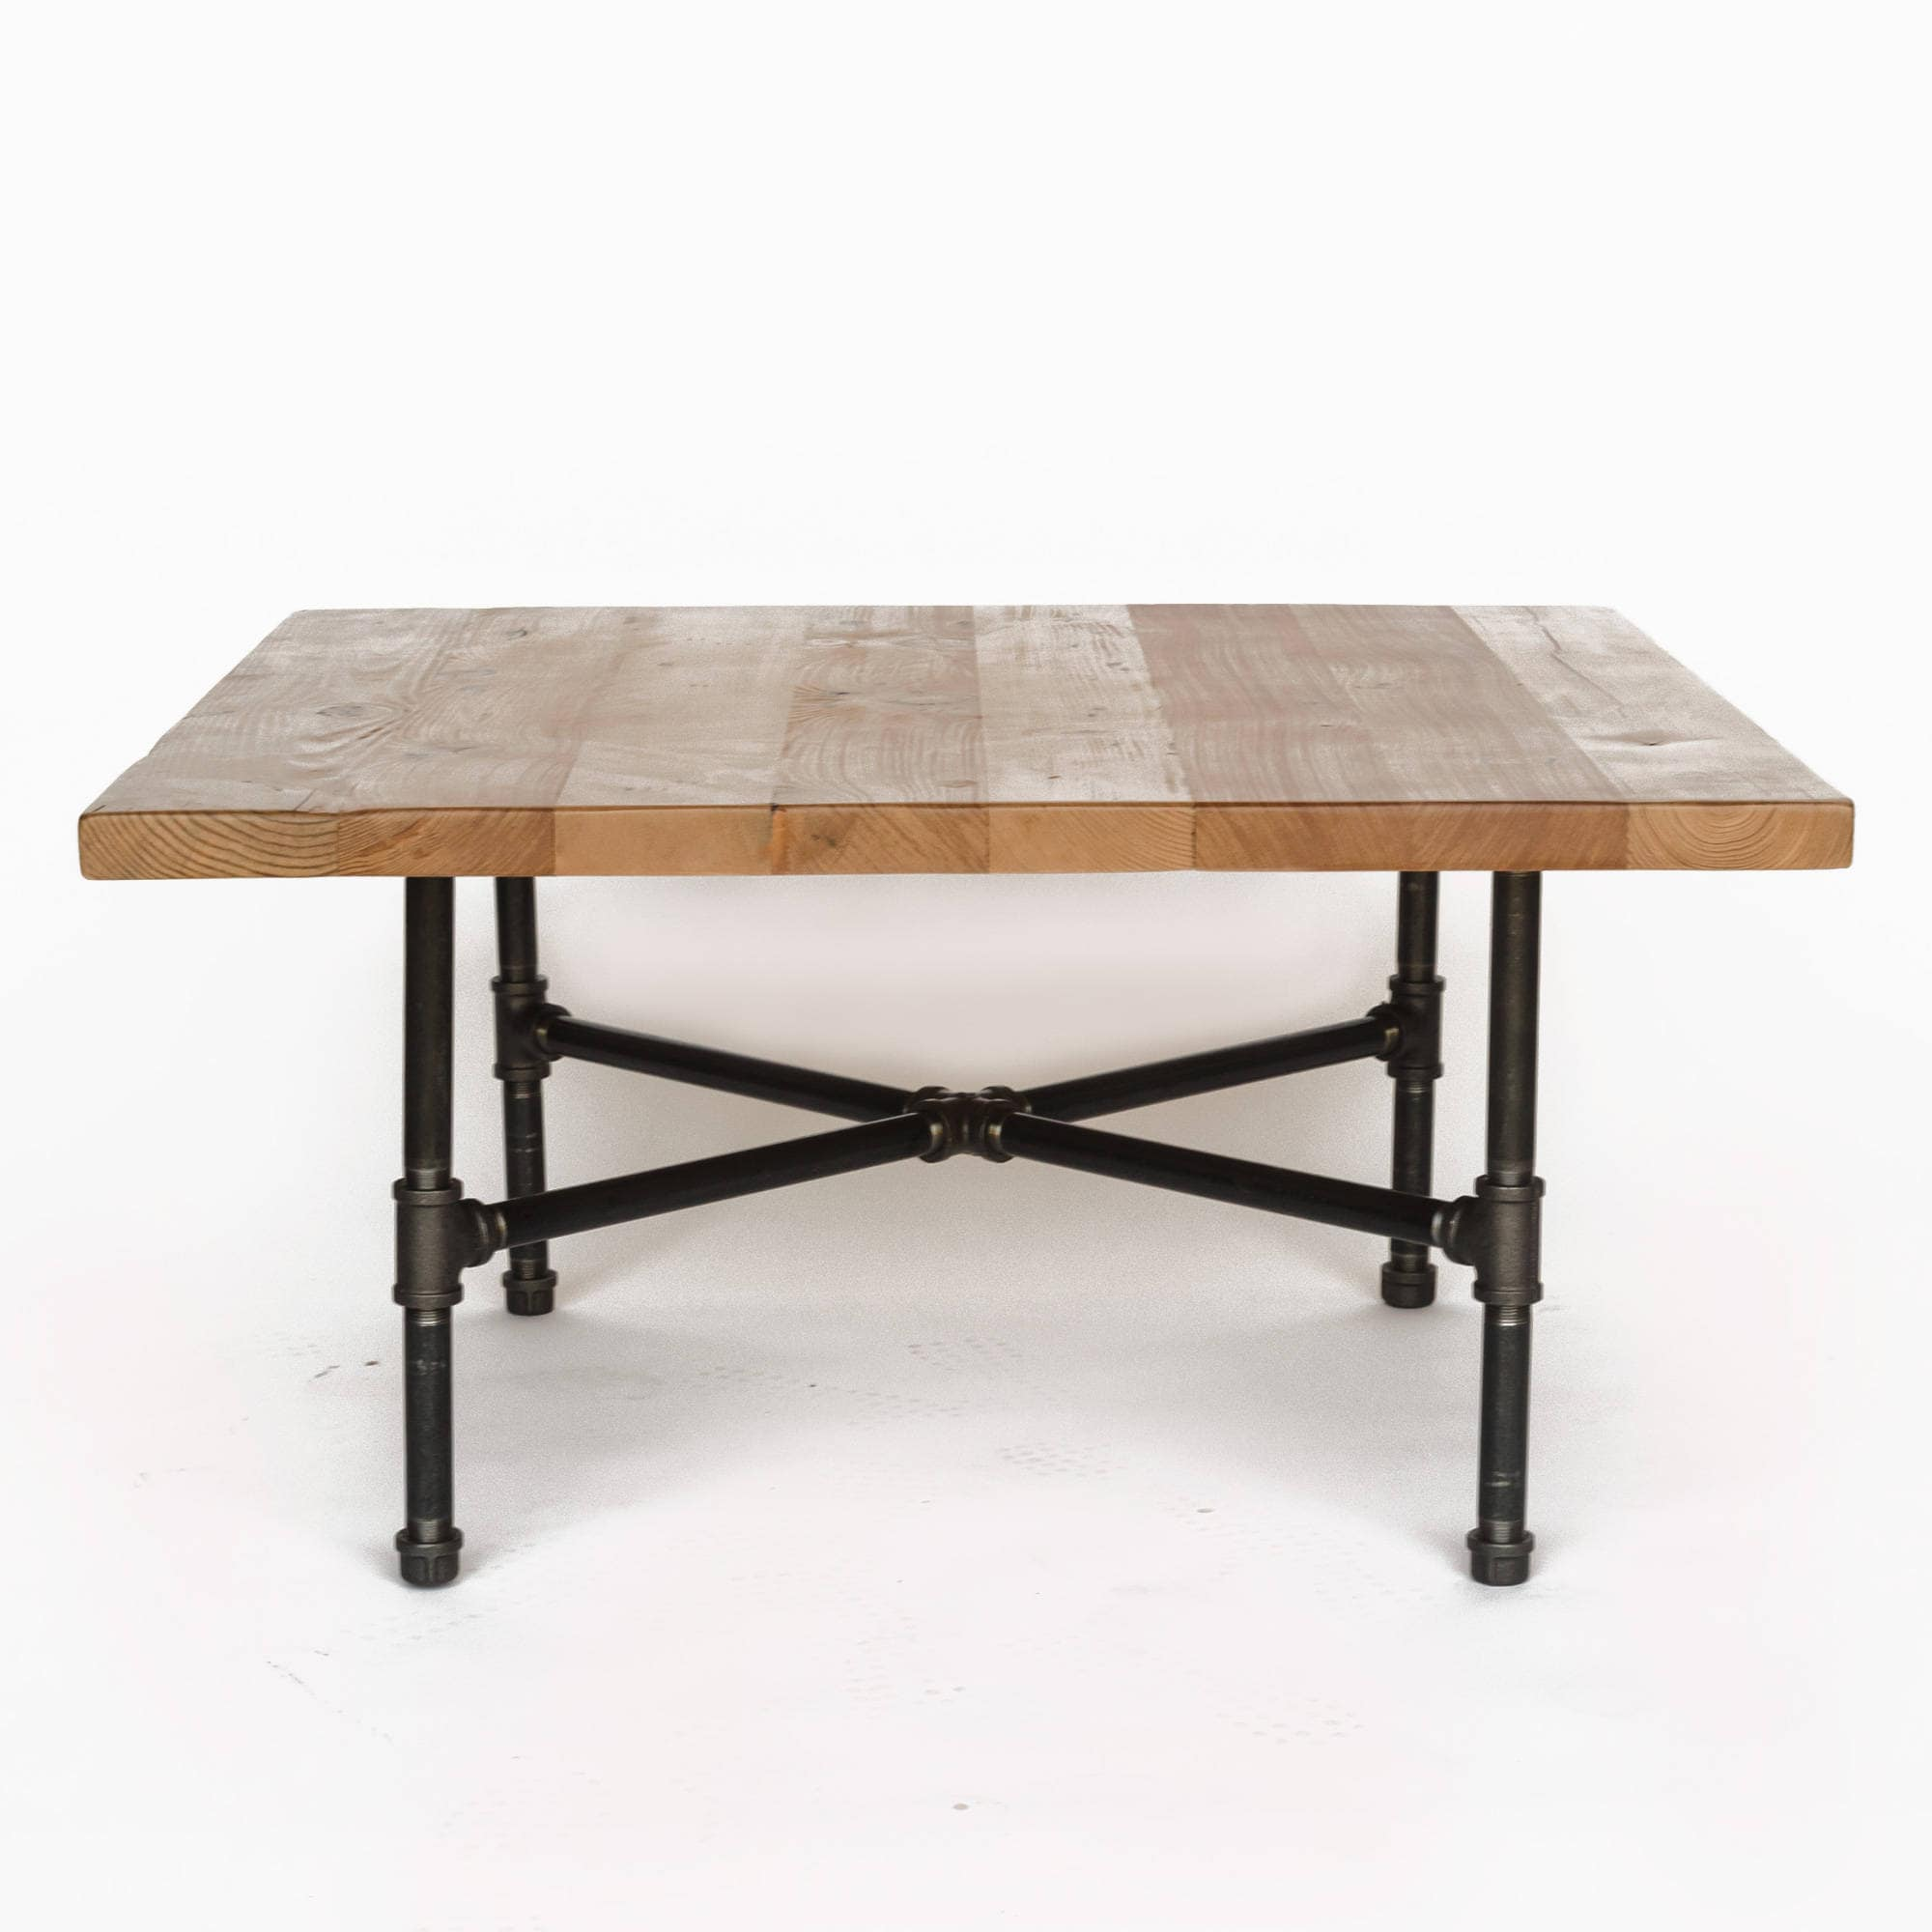 Square Coffee Table Made Of Reclaimed Wood And Iron Pipe